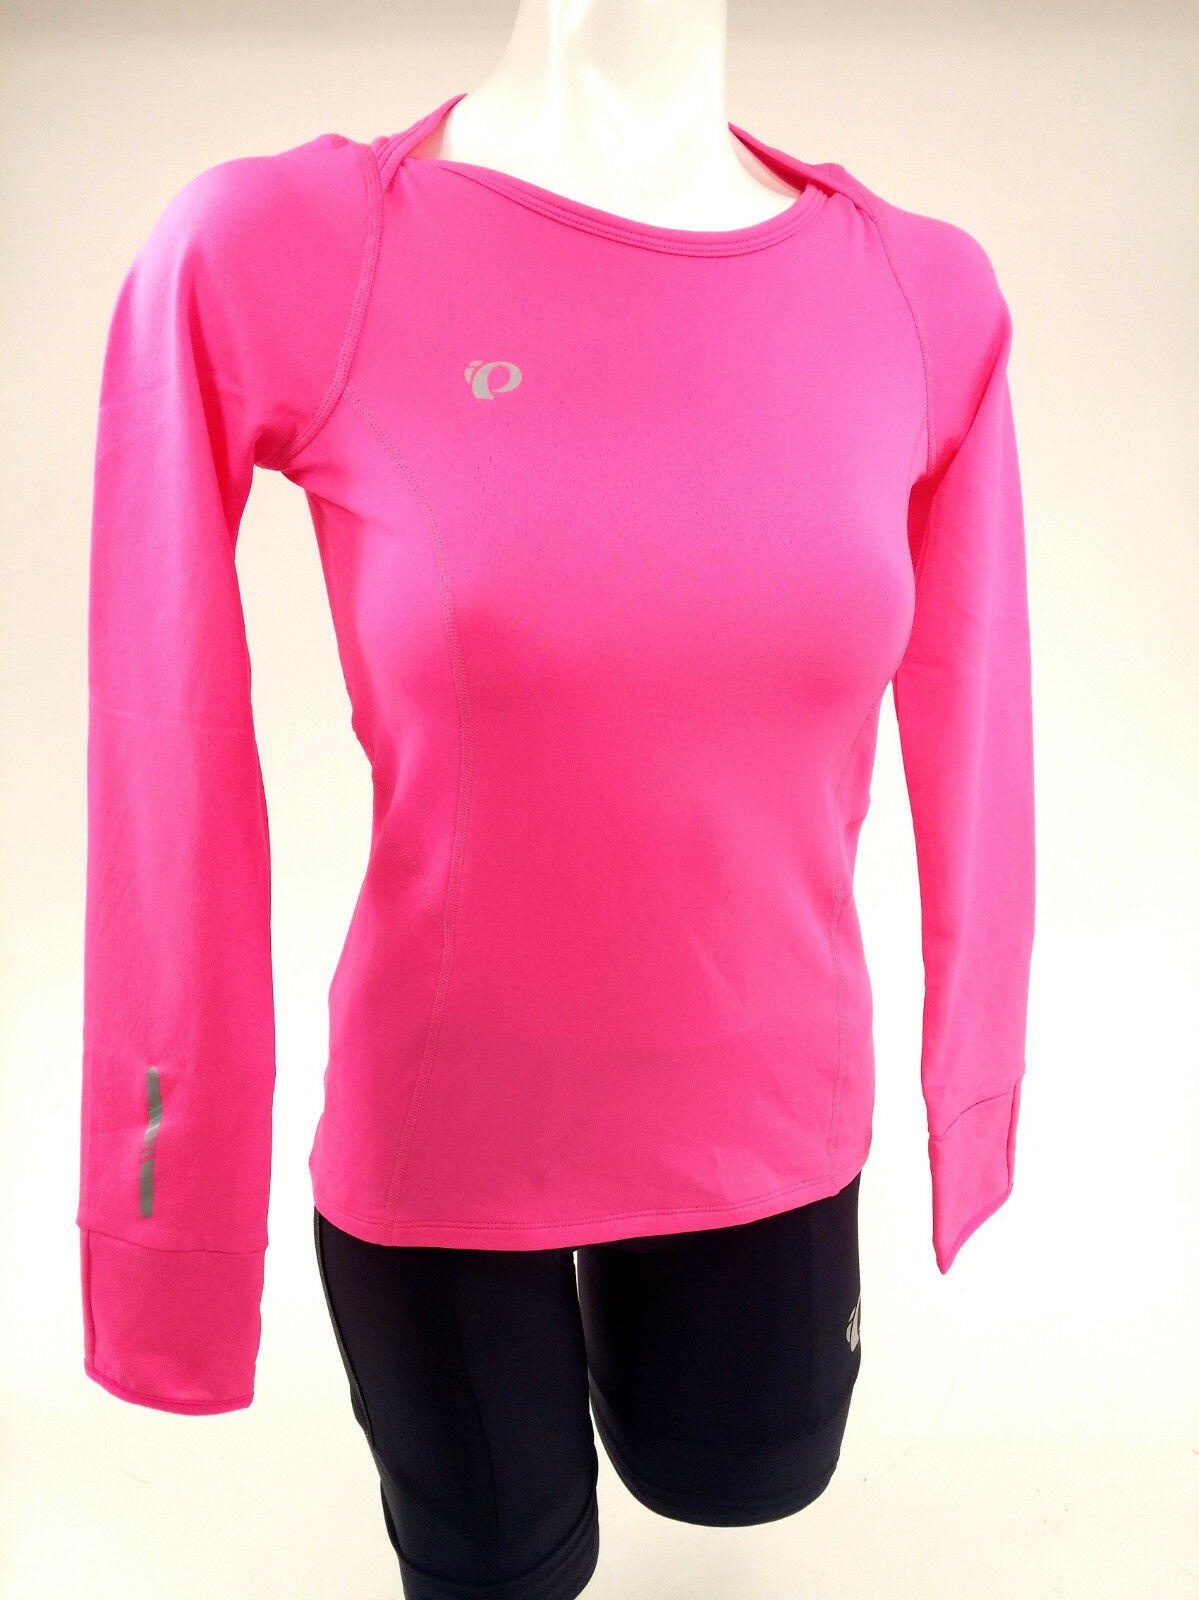 PEARL iZUMi Women's, Pursuit Thermal Top, Screaming Pink, Small